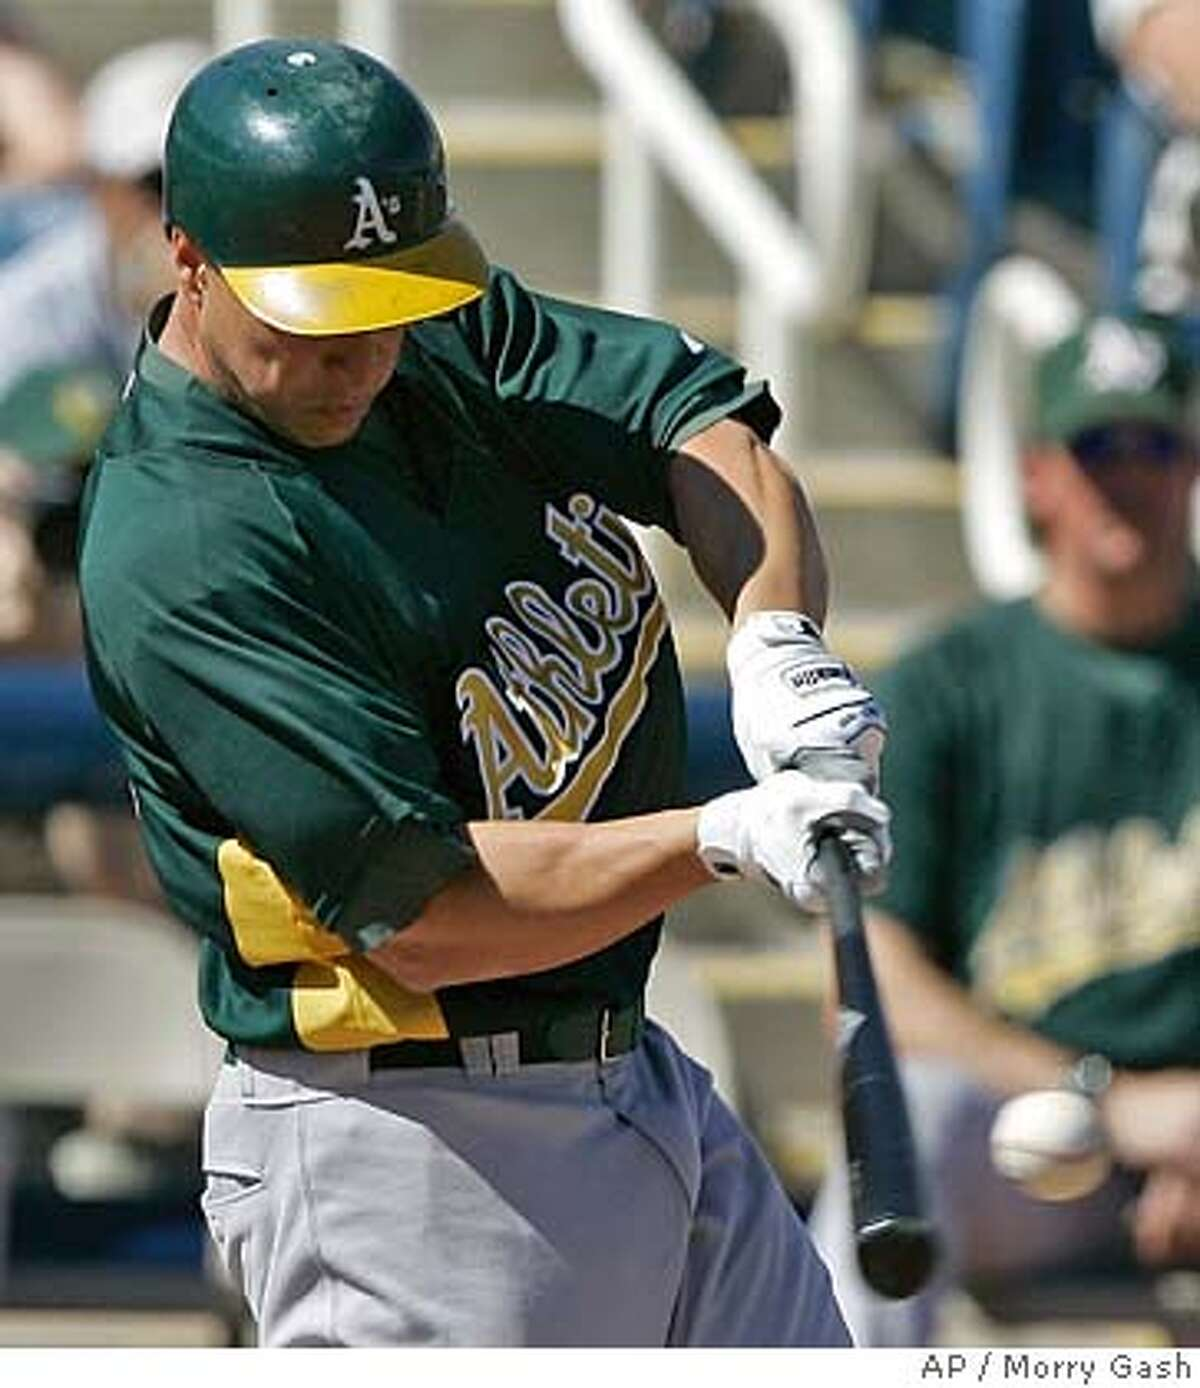 Oakland Athletics' Mark Ellis hits a double during the first inning at a baseball spring training game against the Milwaukee Brewers, Thursday, Feb. 28, 2008, in Phoenix. (AP Photo/Morry Gash)